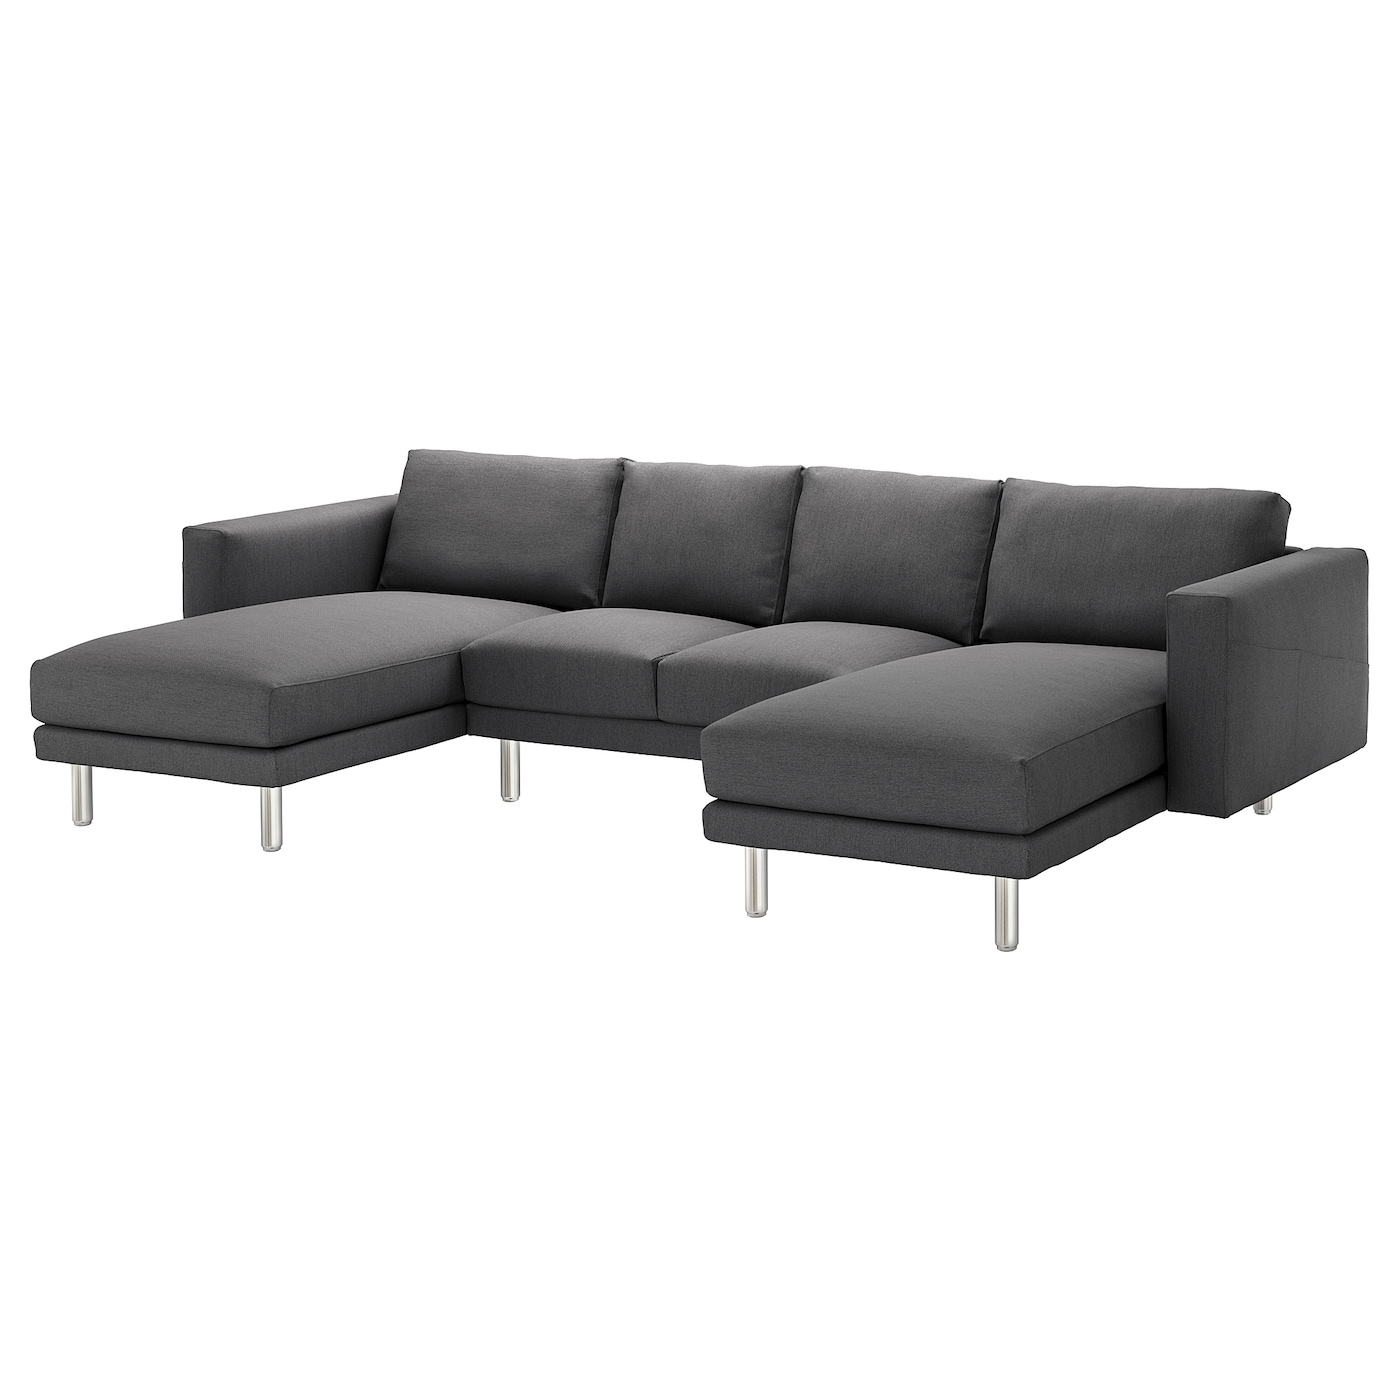 norsborg 4 seat sofa with chaise longues finnsta dark grey. Black Bedroom Furniture Sets. Home Design Ideas